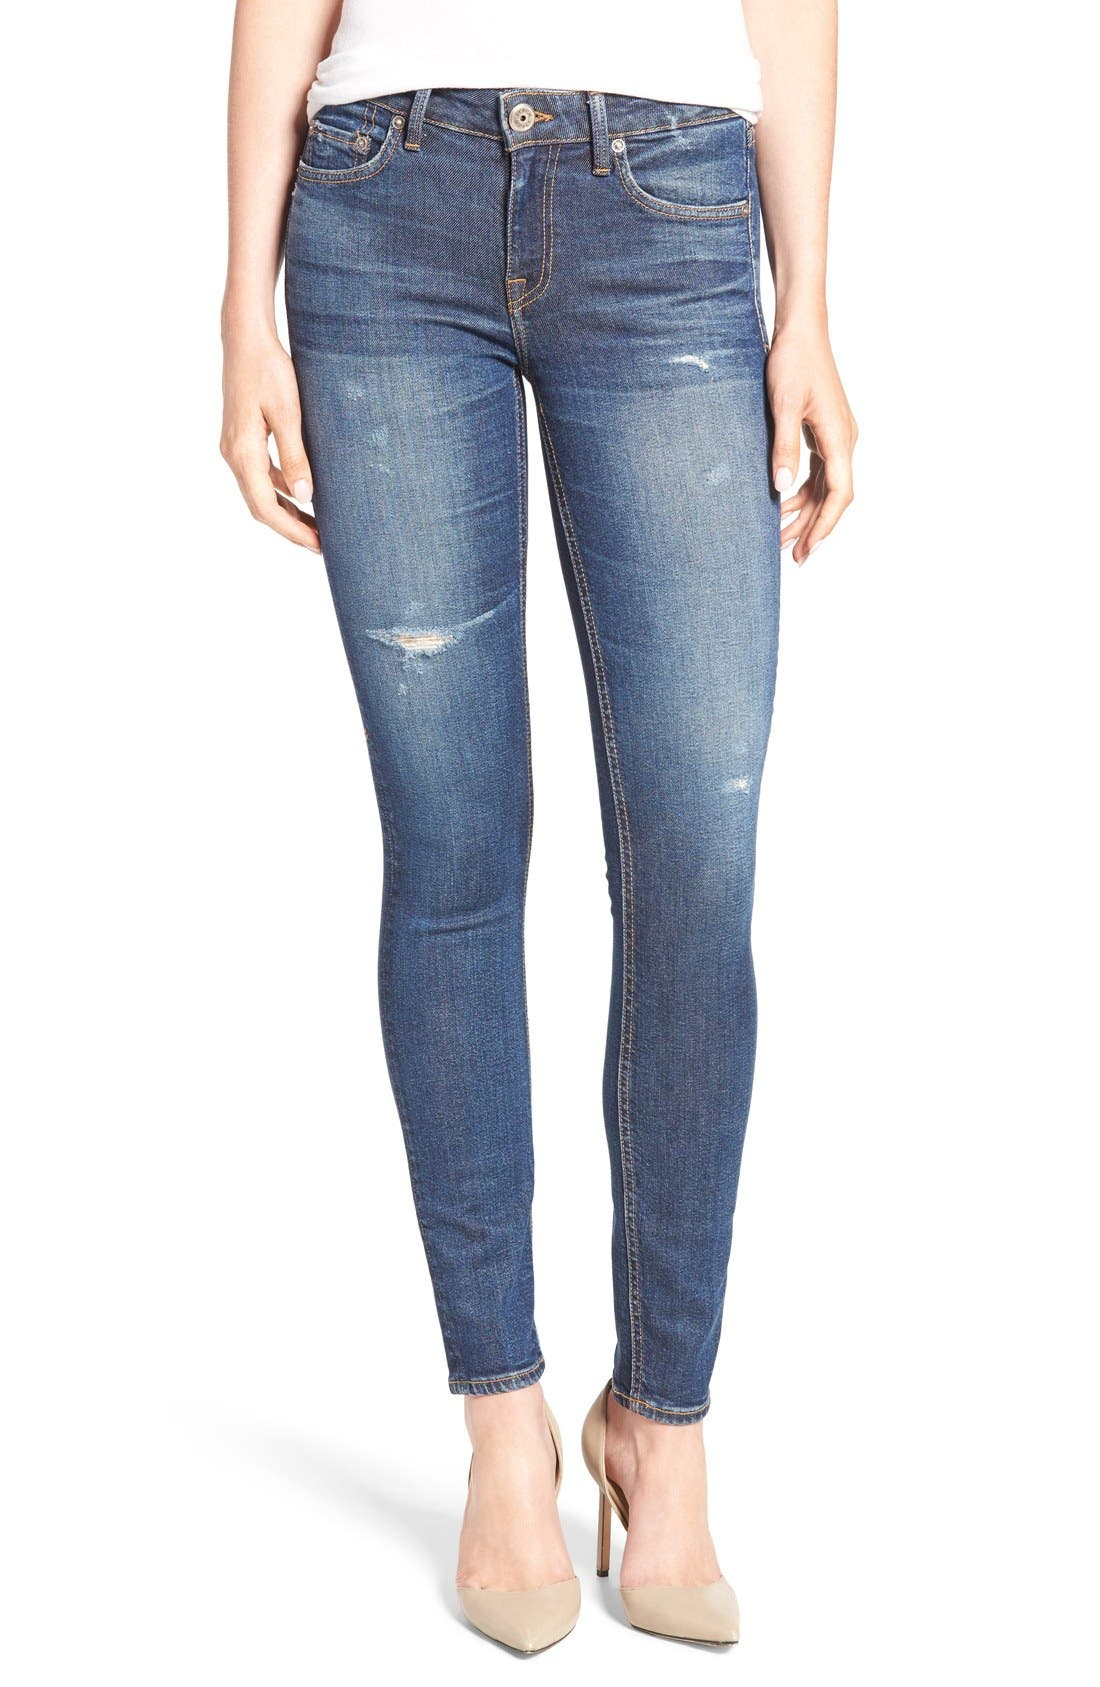 STROM 'Tio' Ankle Skinny Jeans, Main, color, 420